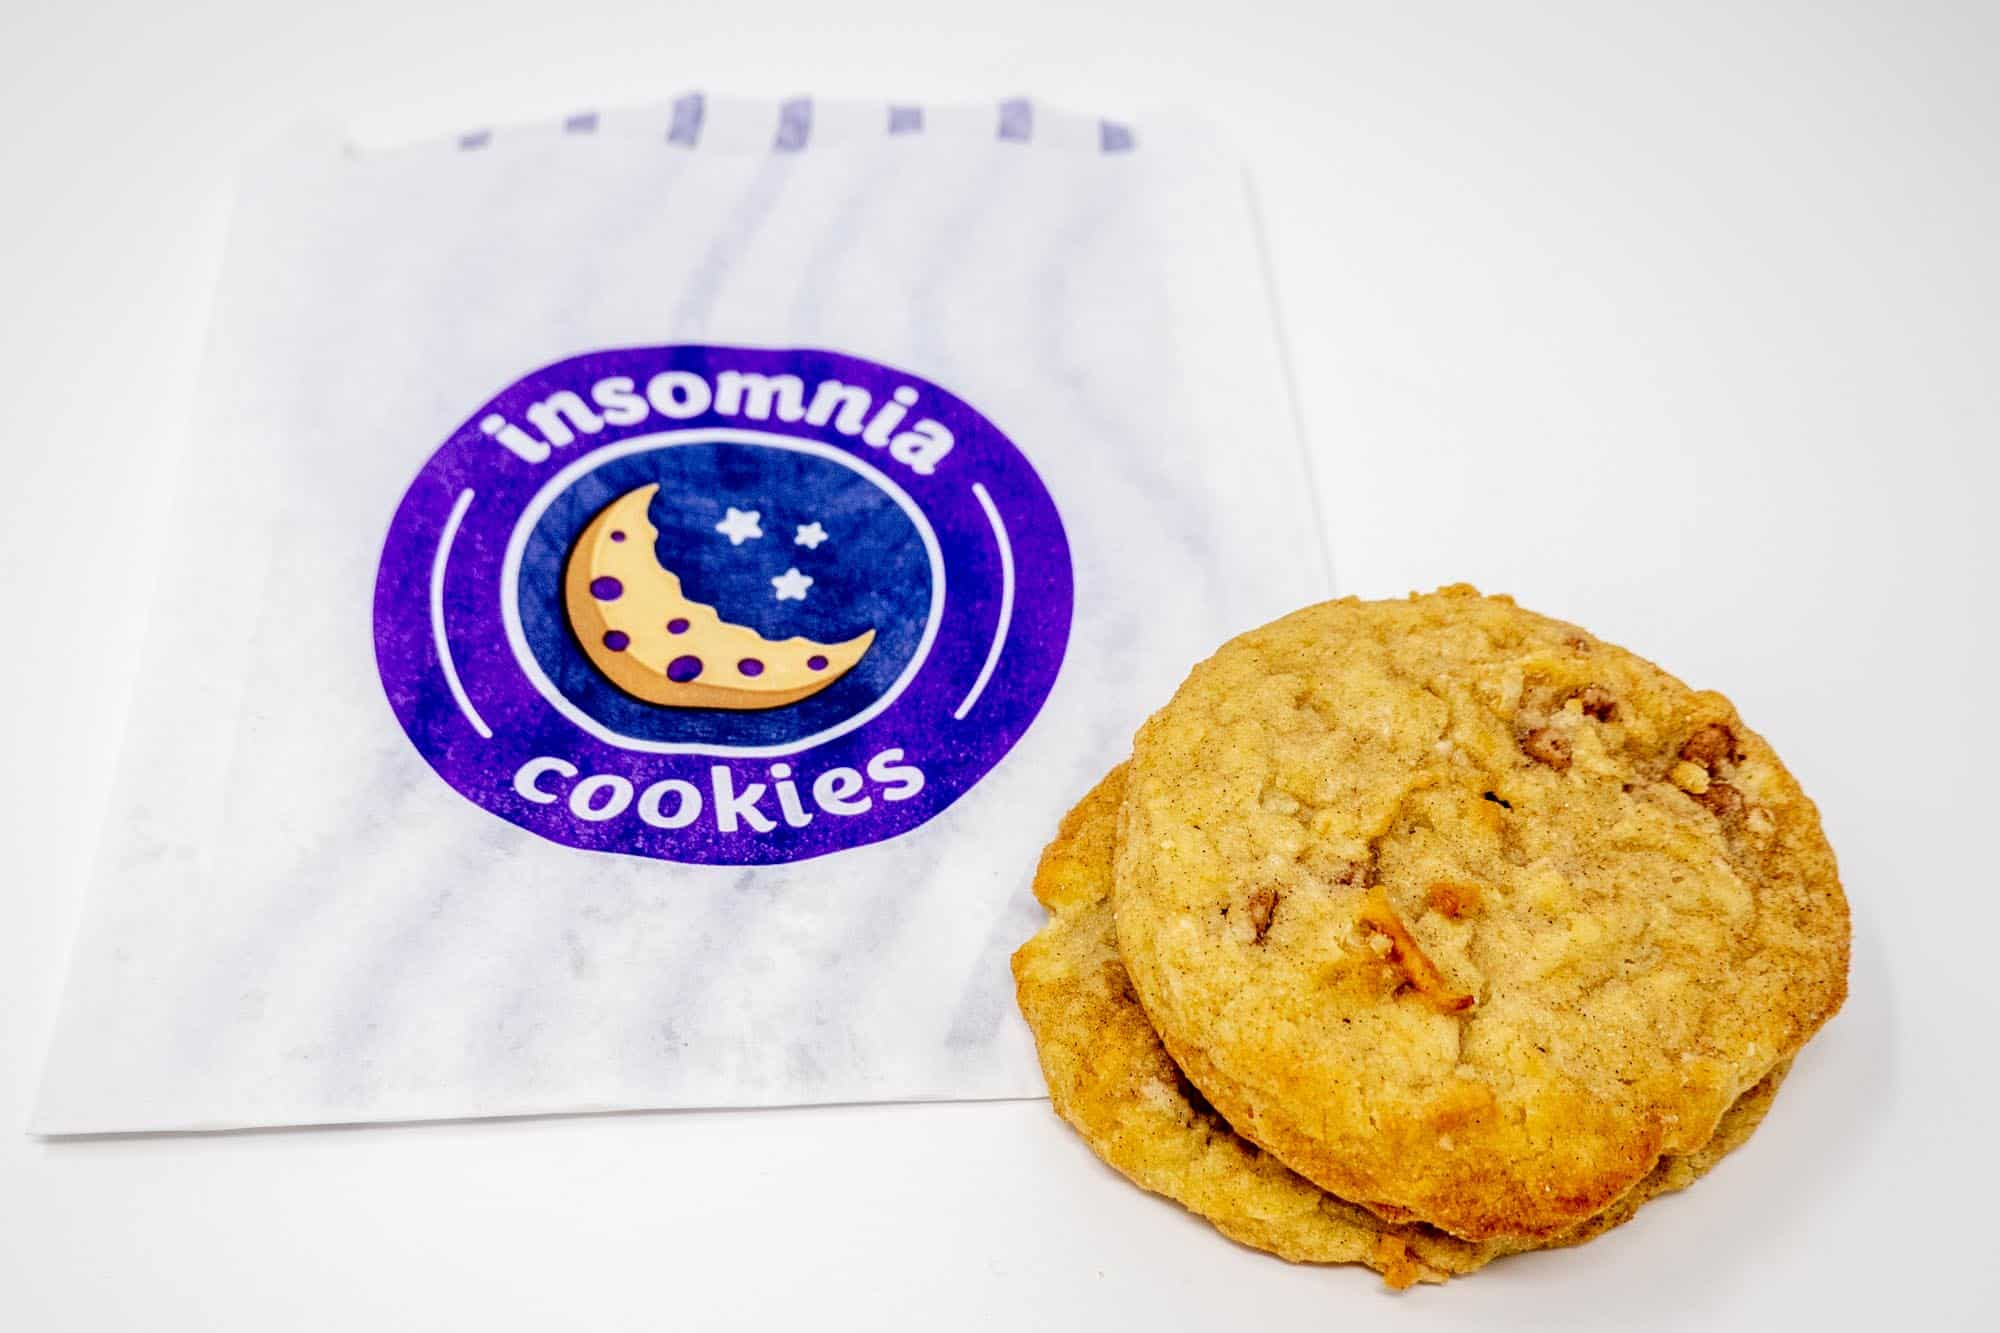 Two cookies and an Insomnia Cookies bag